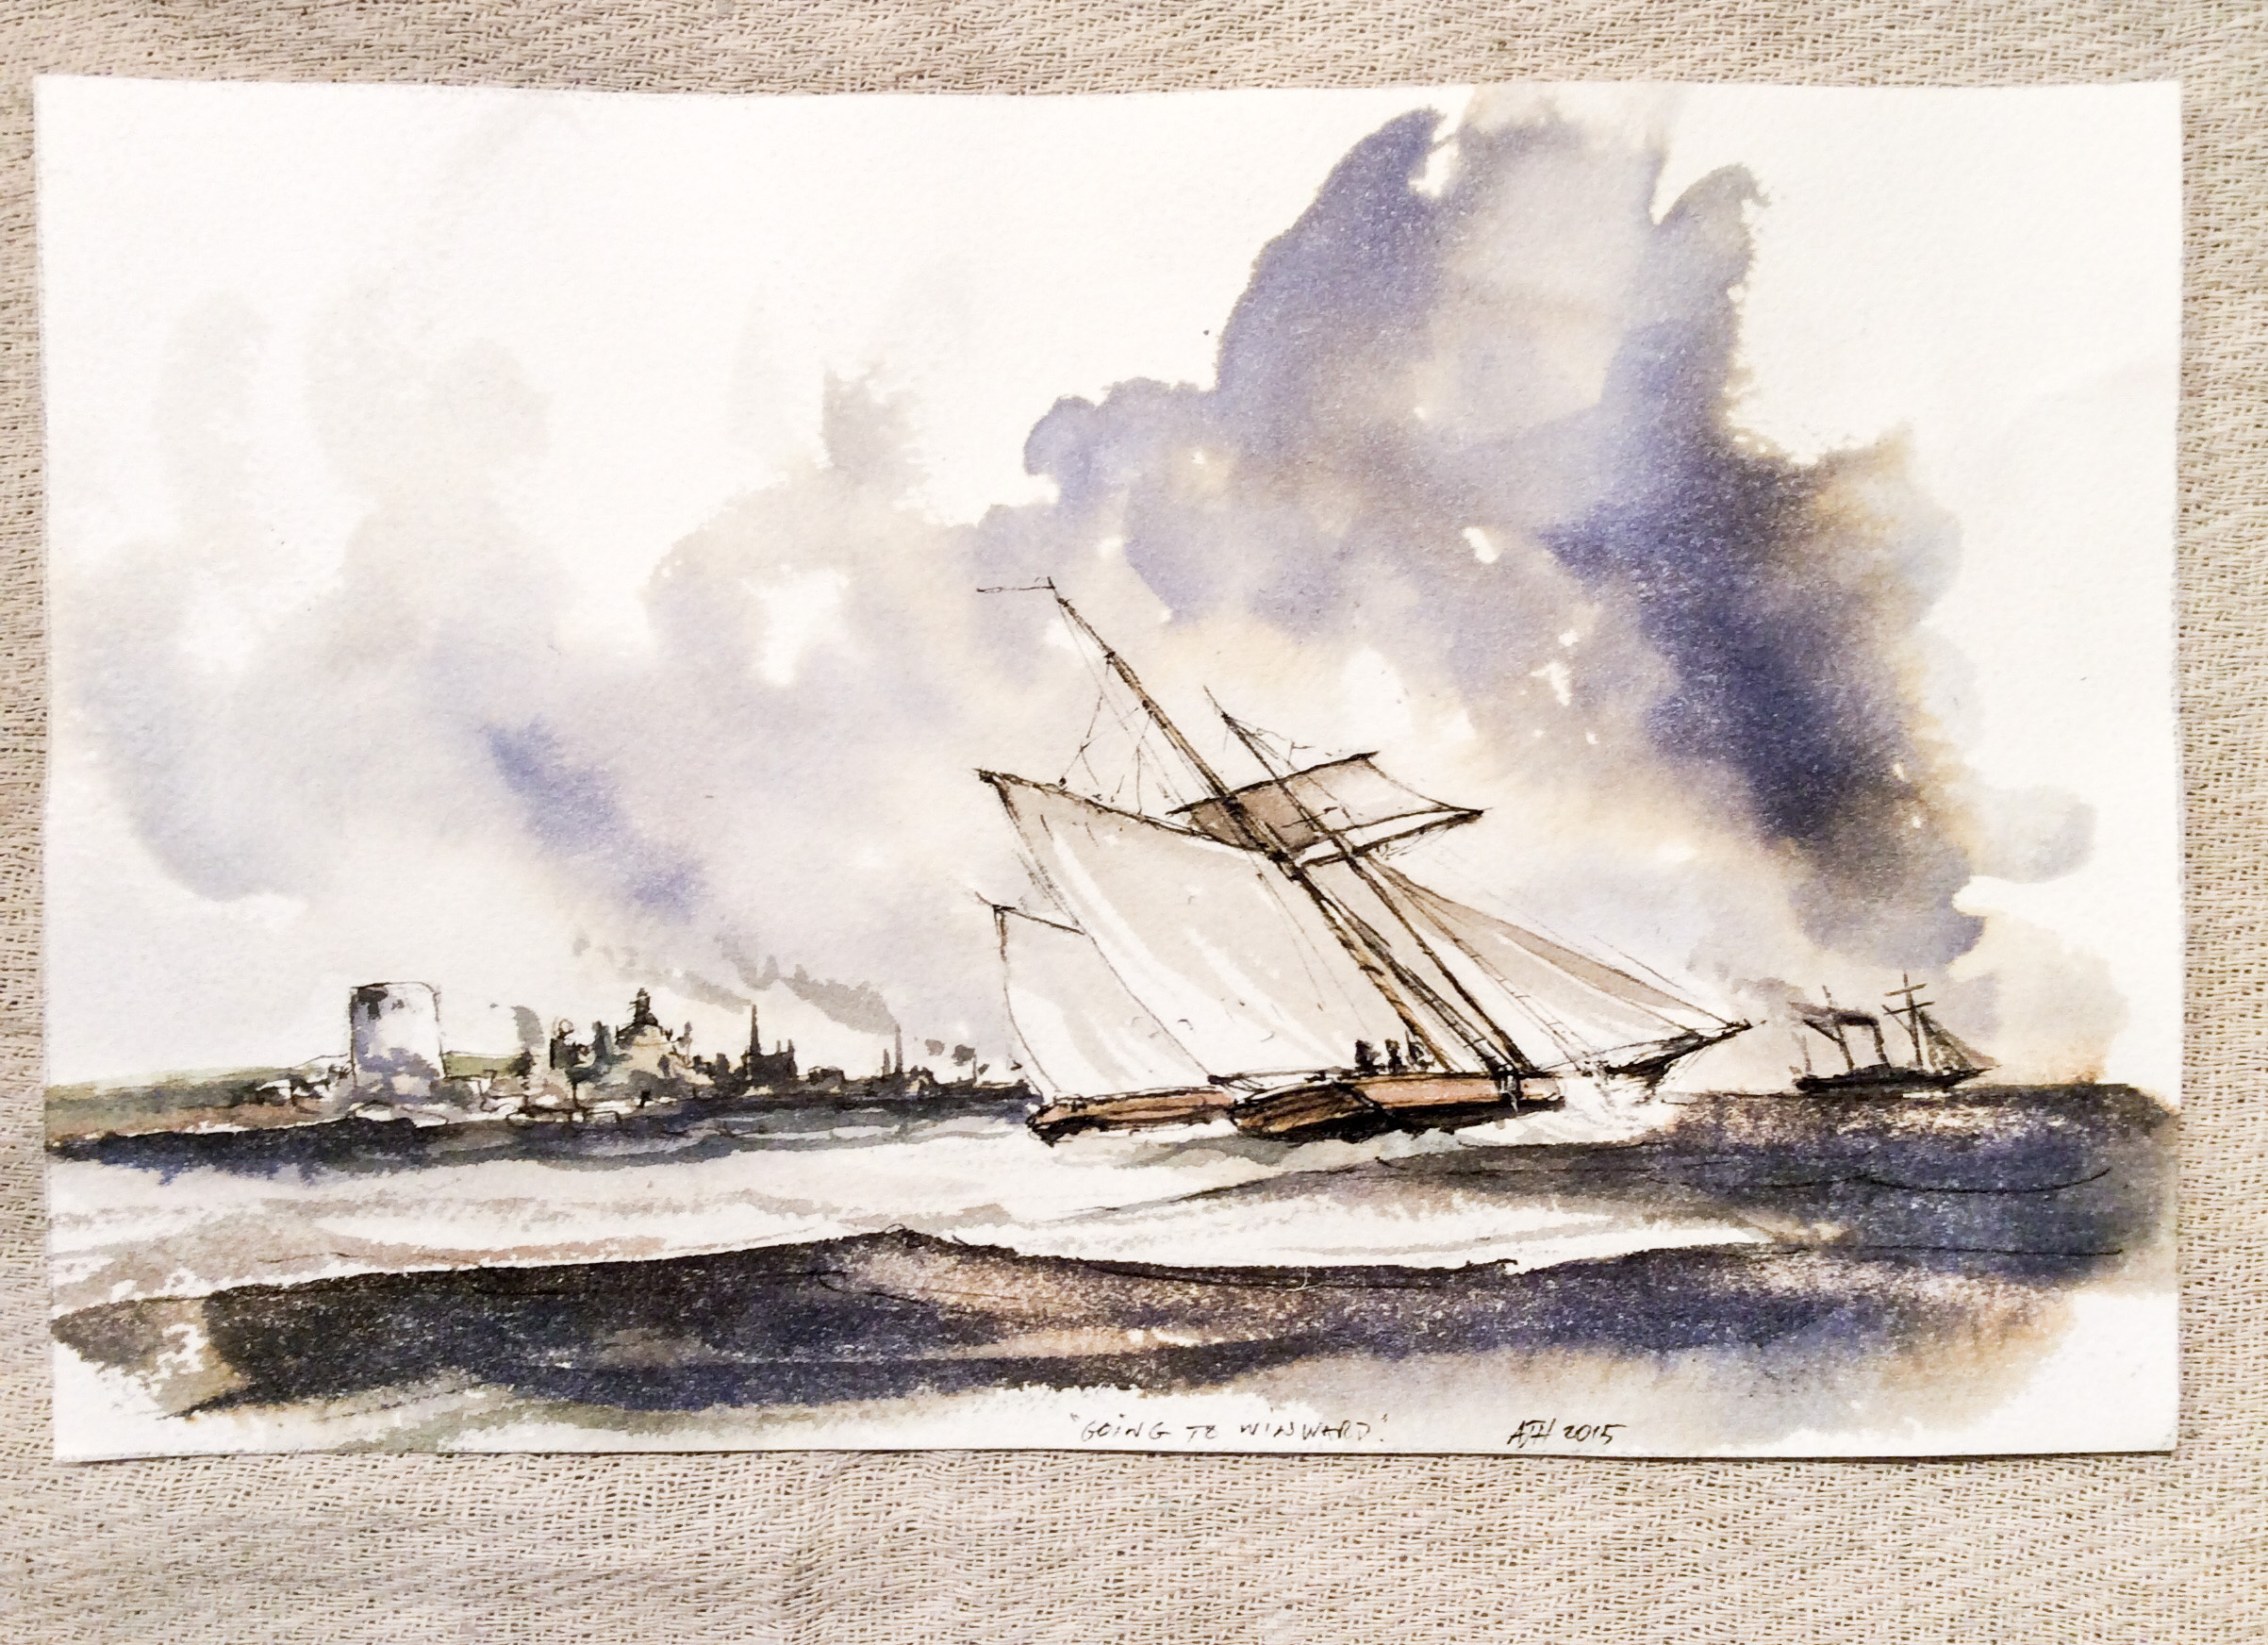 Seascape sketch - Alexander Hamilton - Decorative Artist - London